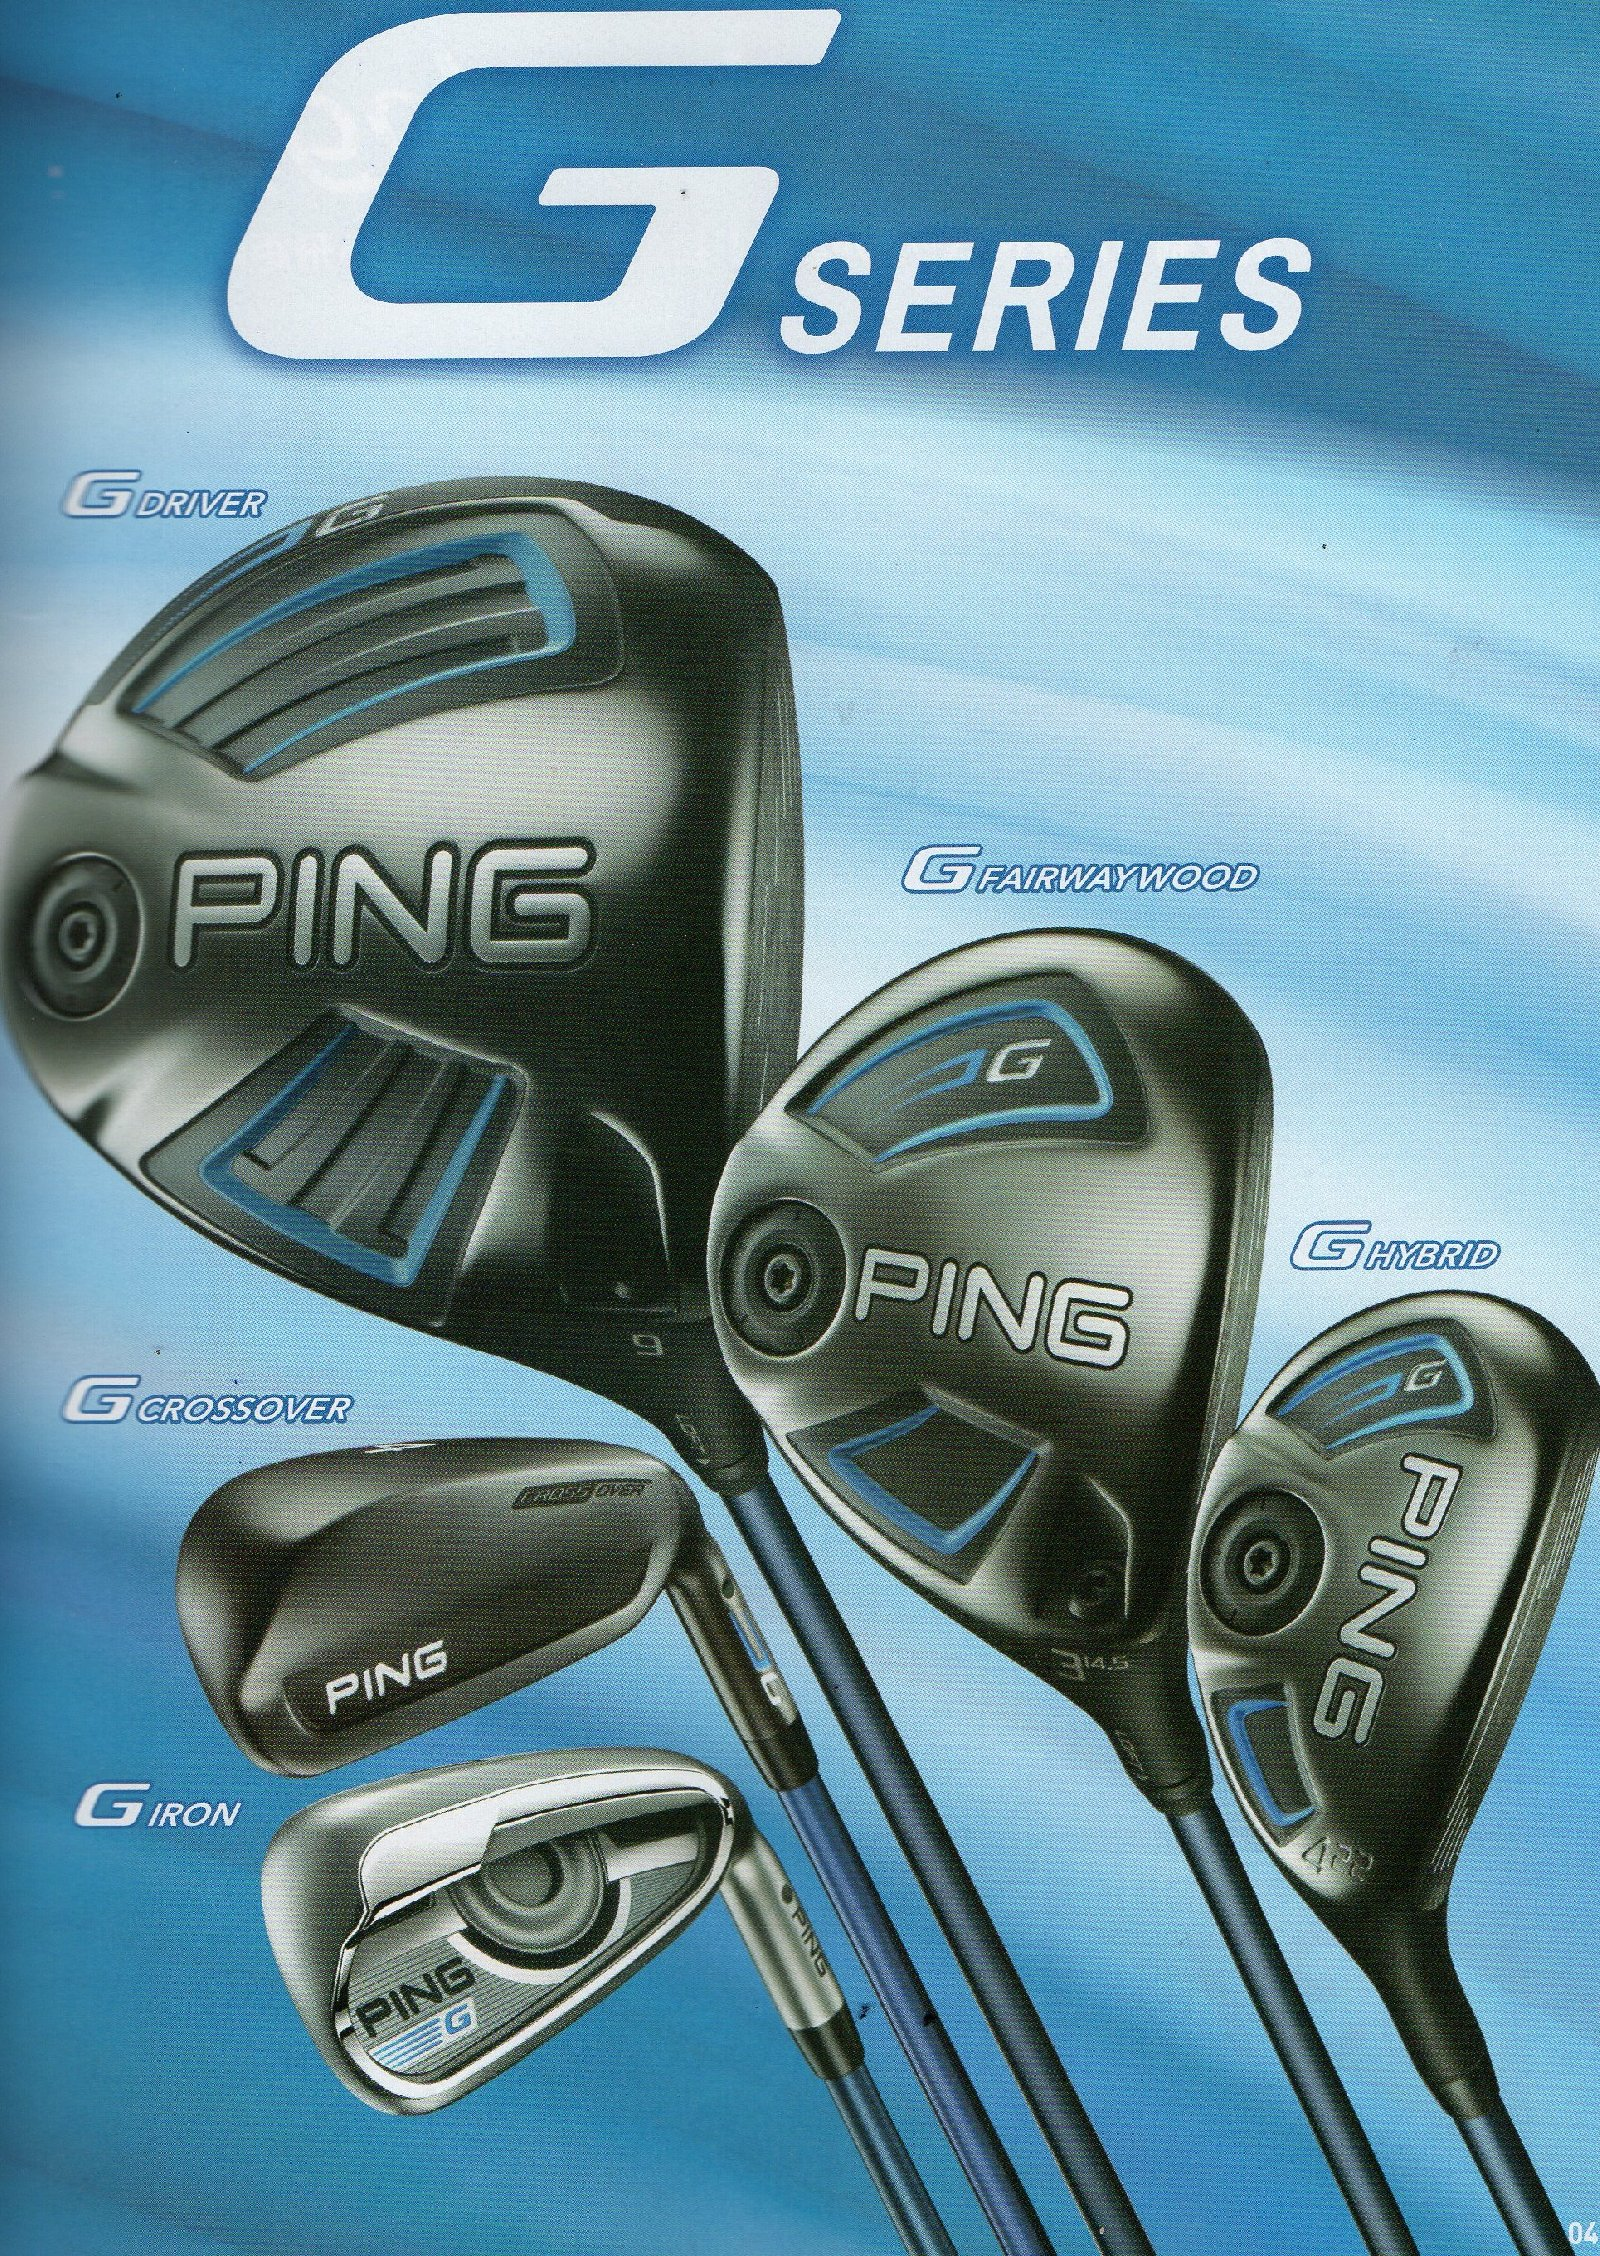 PING G SERIES Golf Equipments